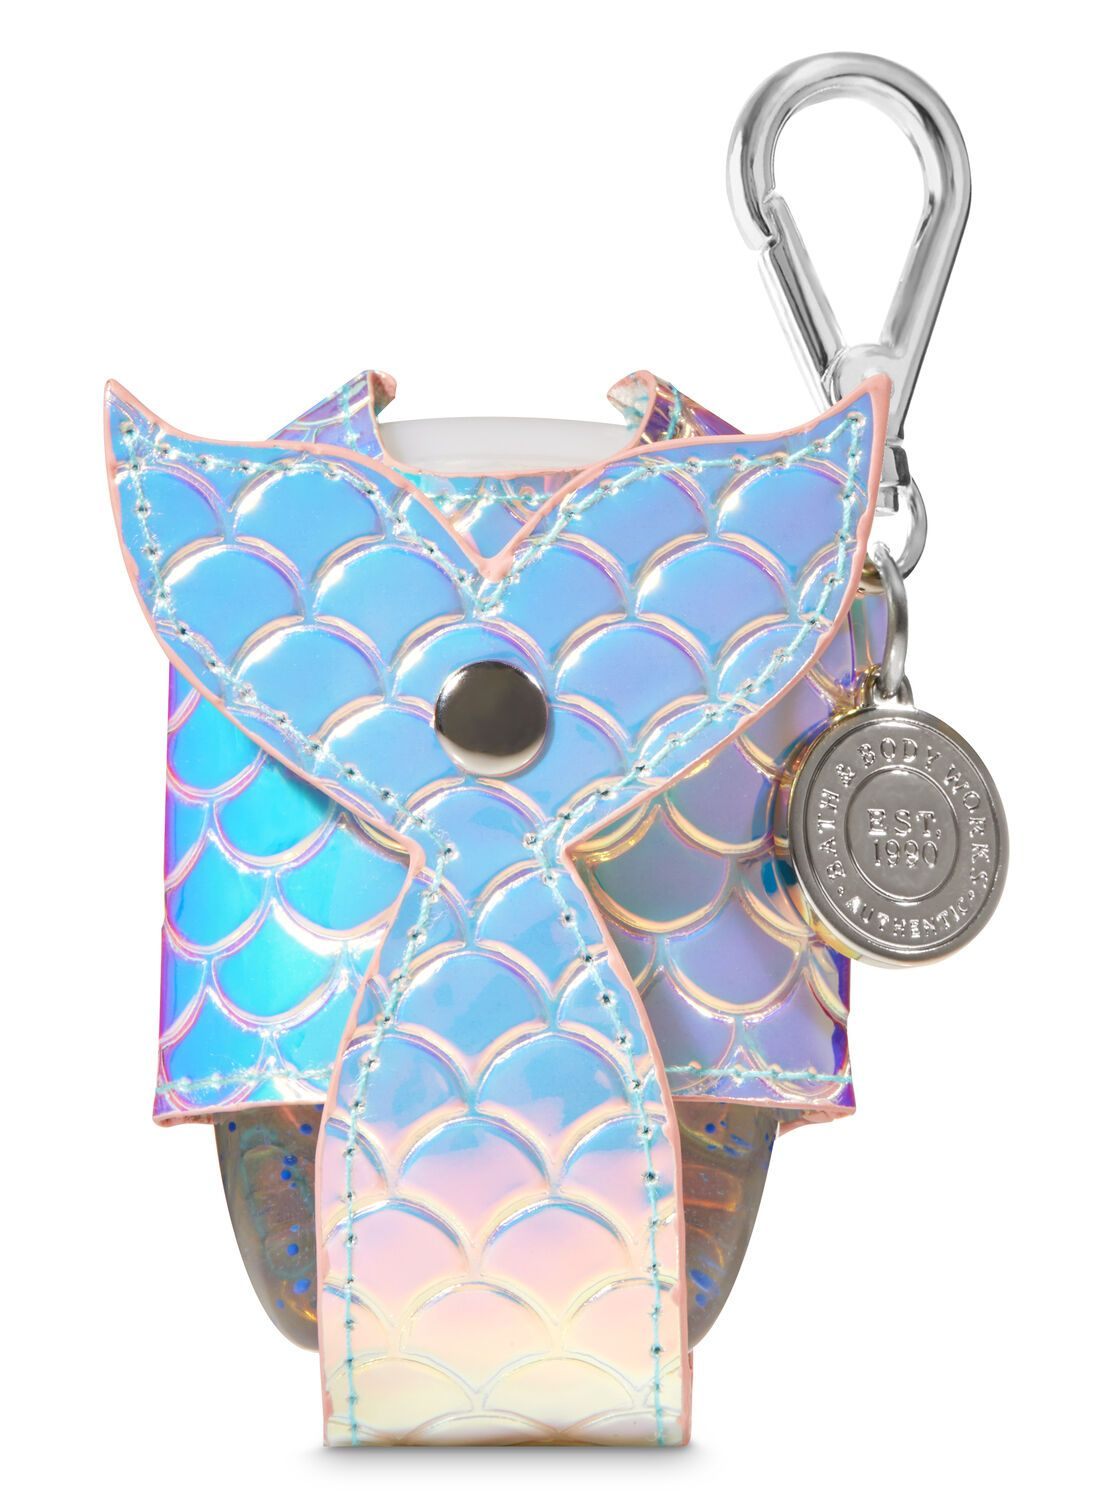 Bath Body Works Iridescent Mermaid Tail Pocketbac Holder Hand